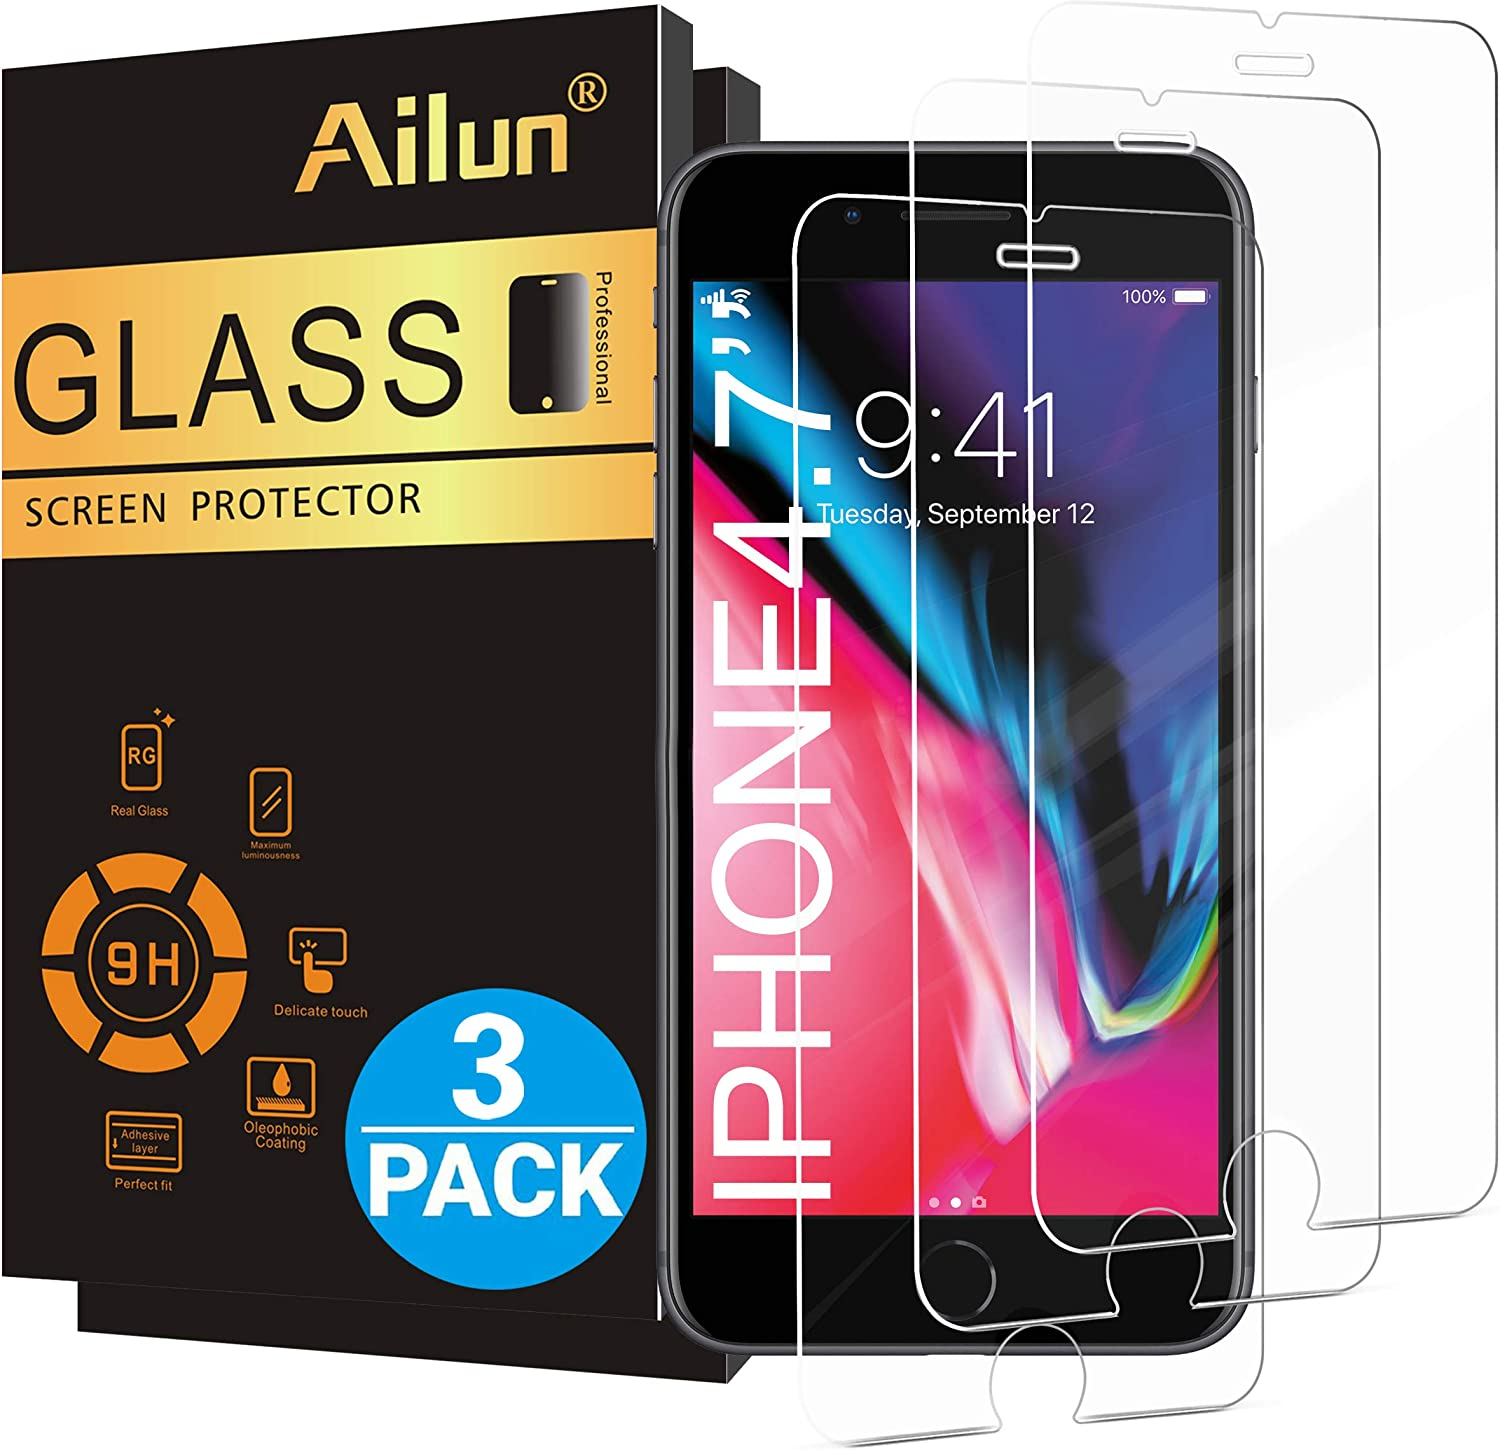 Ailun Screen Protector for Apple iPhone SE 2nd Generation, iPhone 8,7,6s,6, 4.7-Inch,[3 Pack] 2.5D Edge Tempered Glass,Case Friendly 8140RXSiuQL